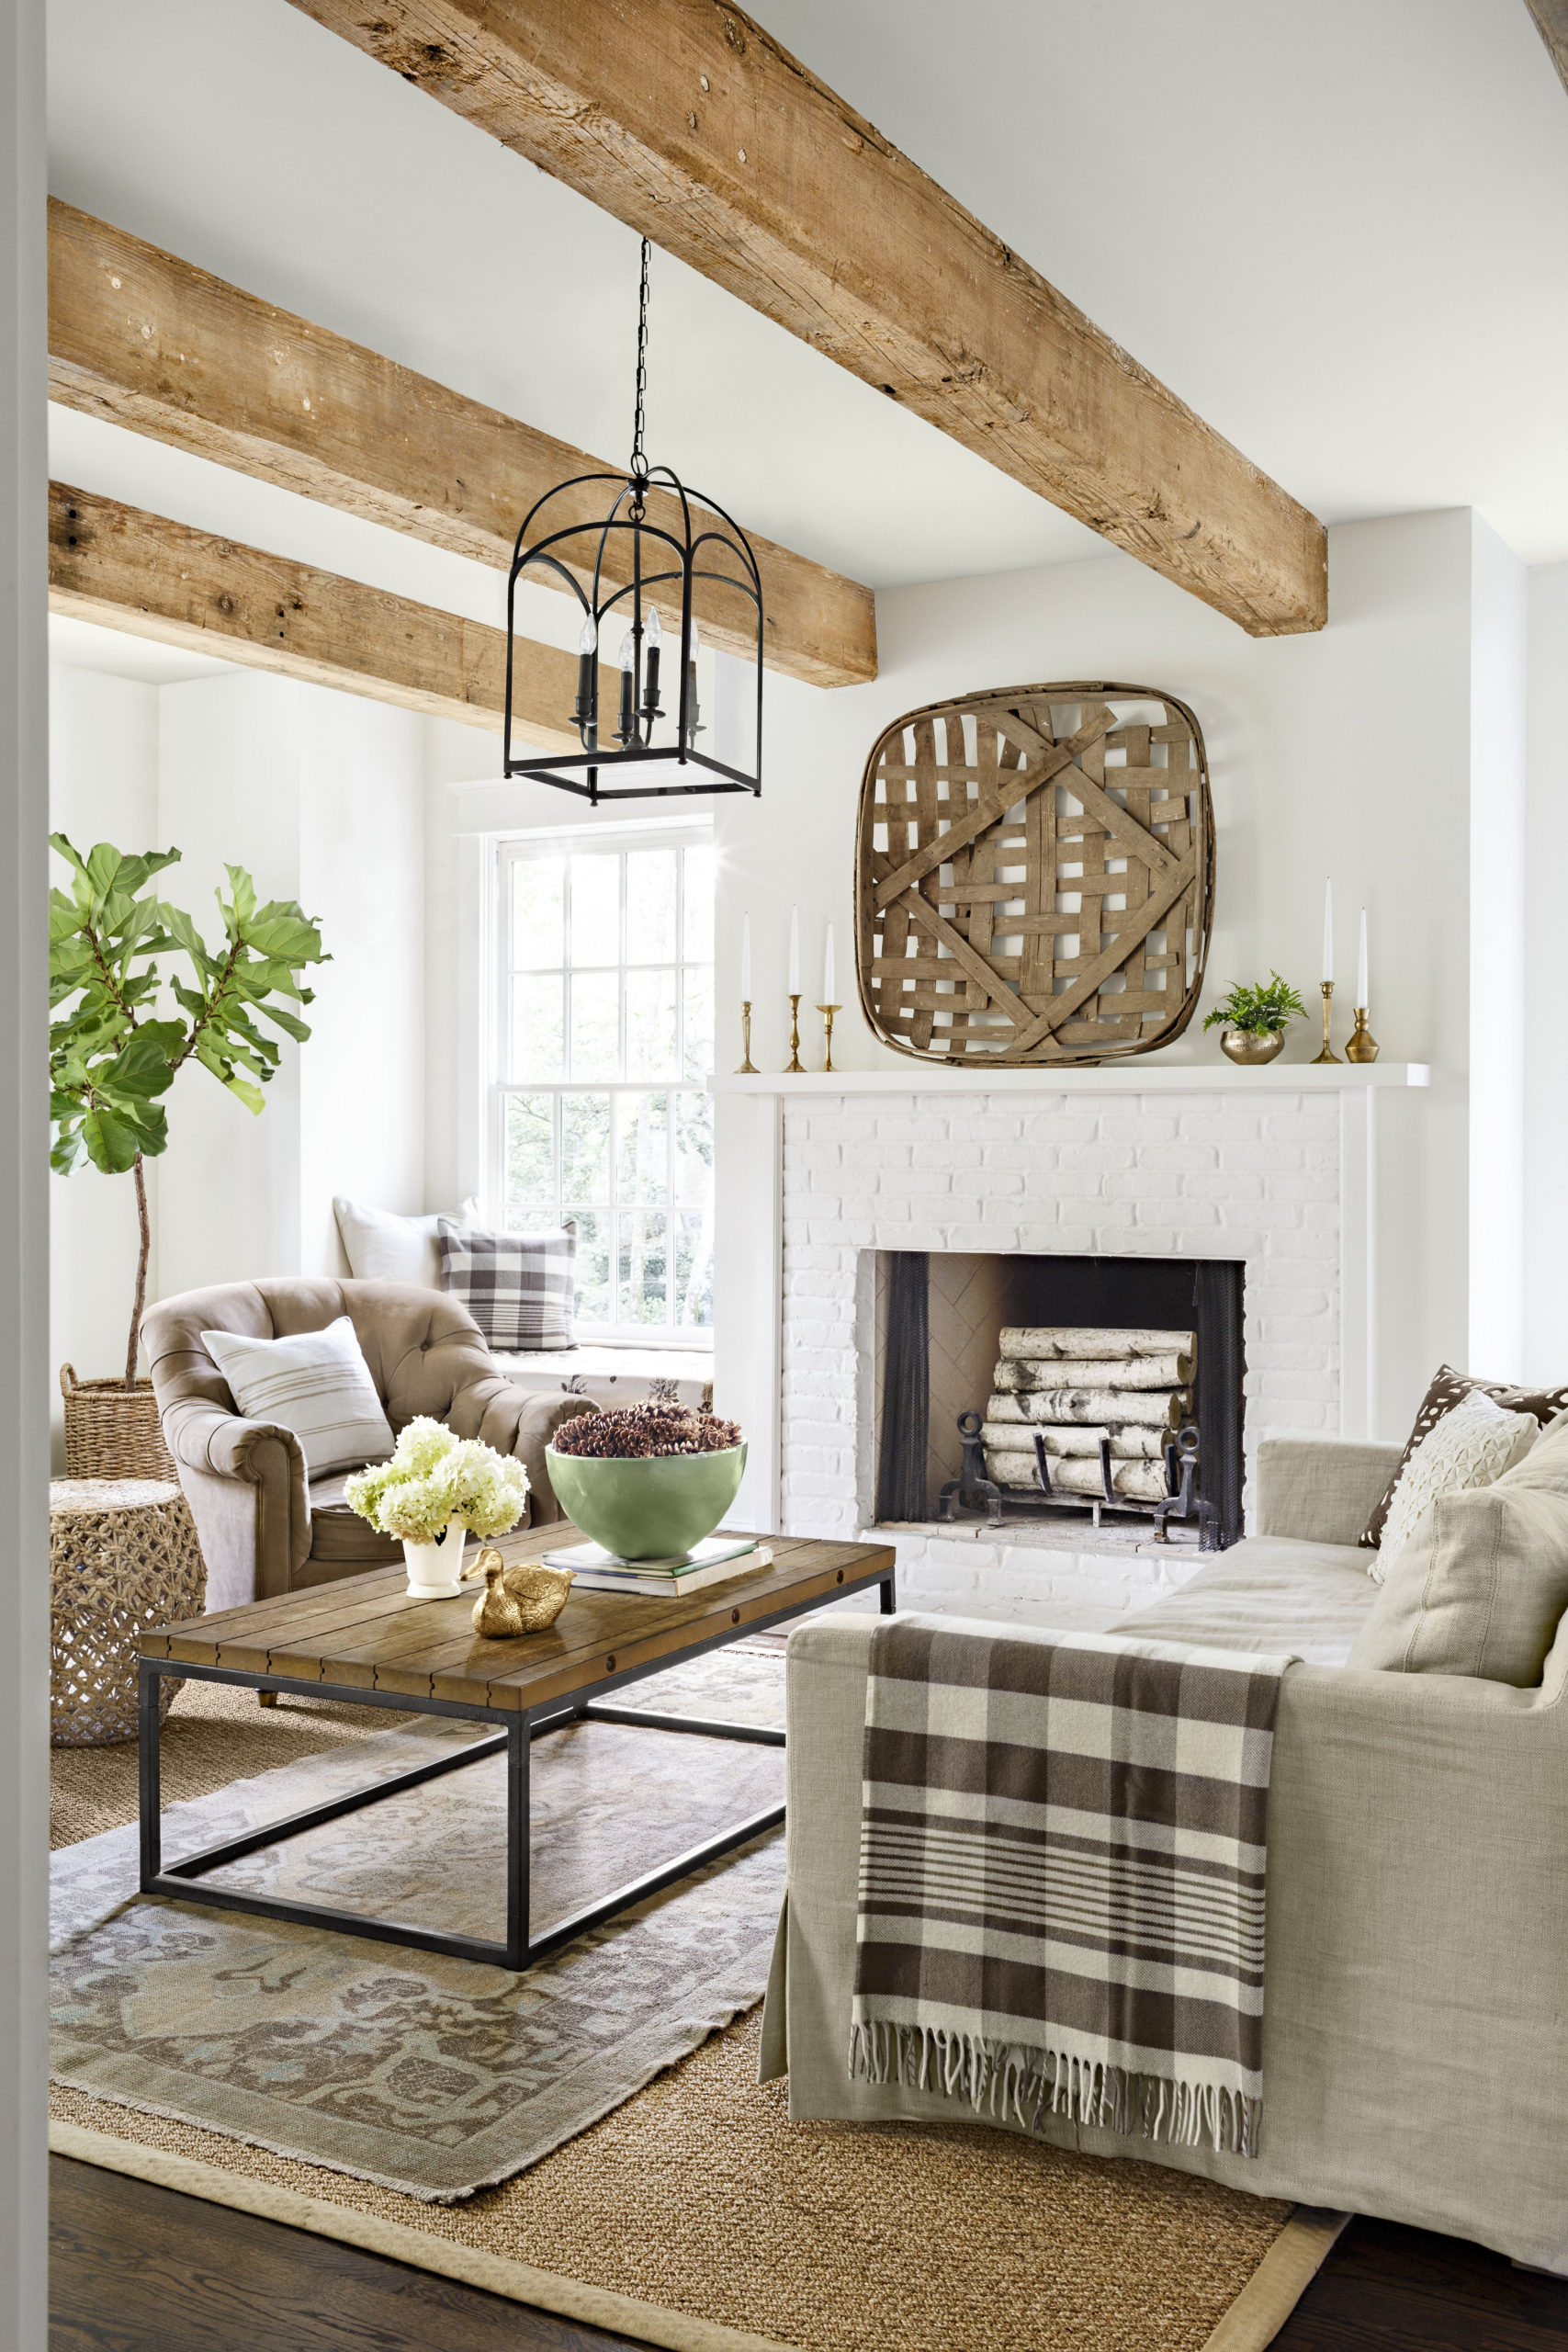 10+ Amazing Rustic Cozy Living Room